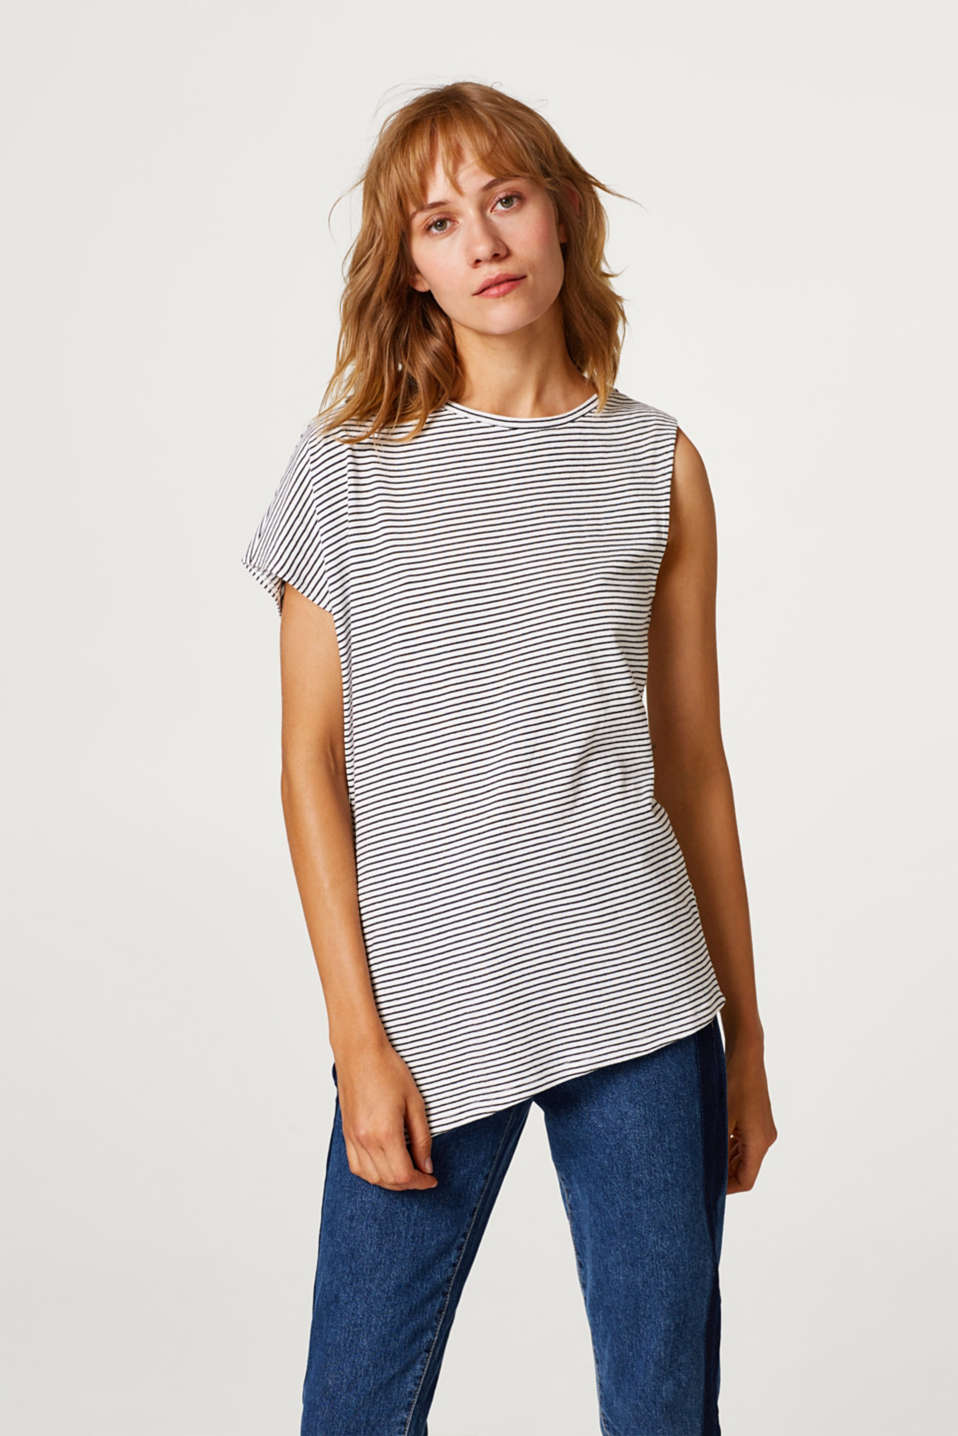 Esprit - One-shoulder top, 100% cotton